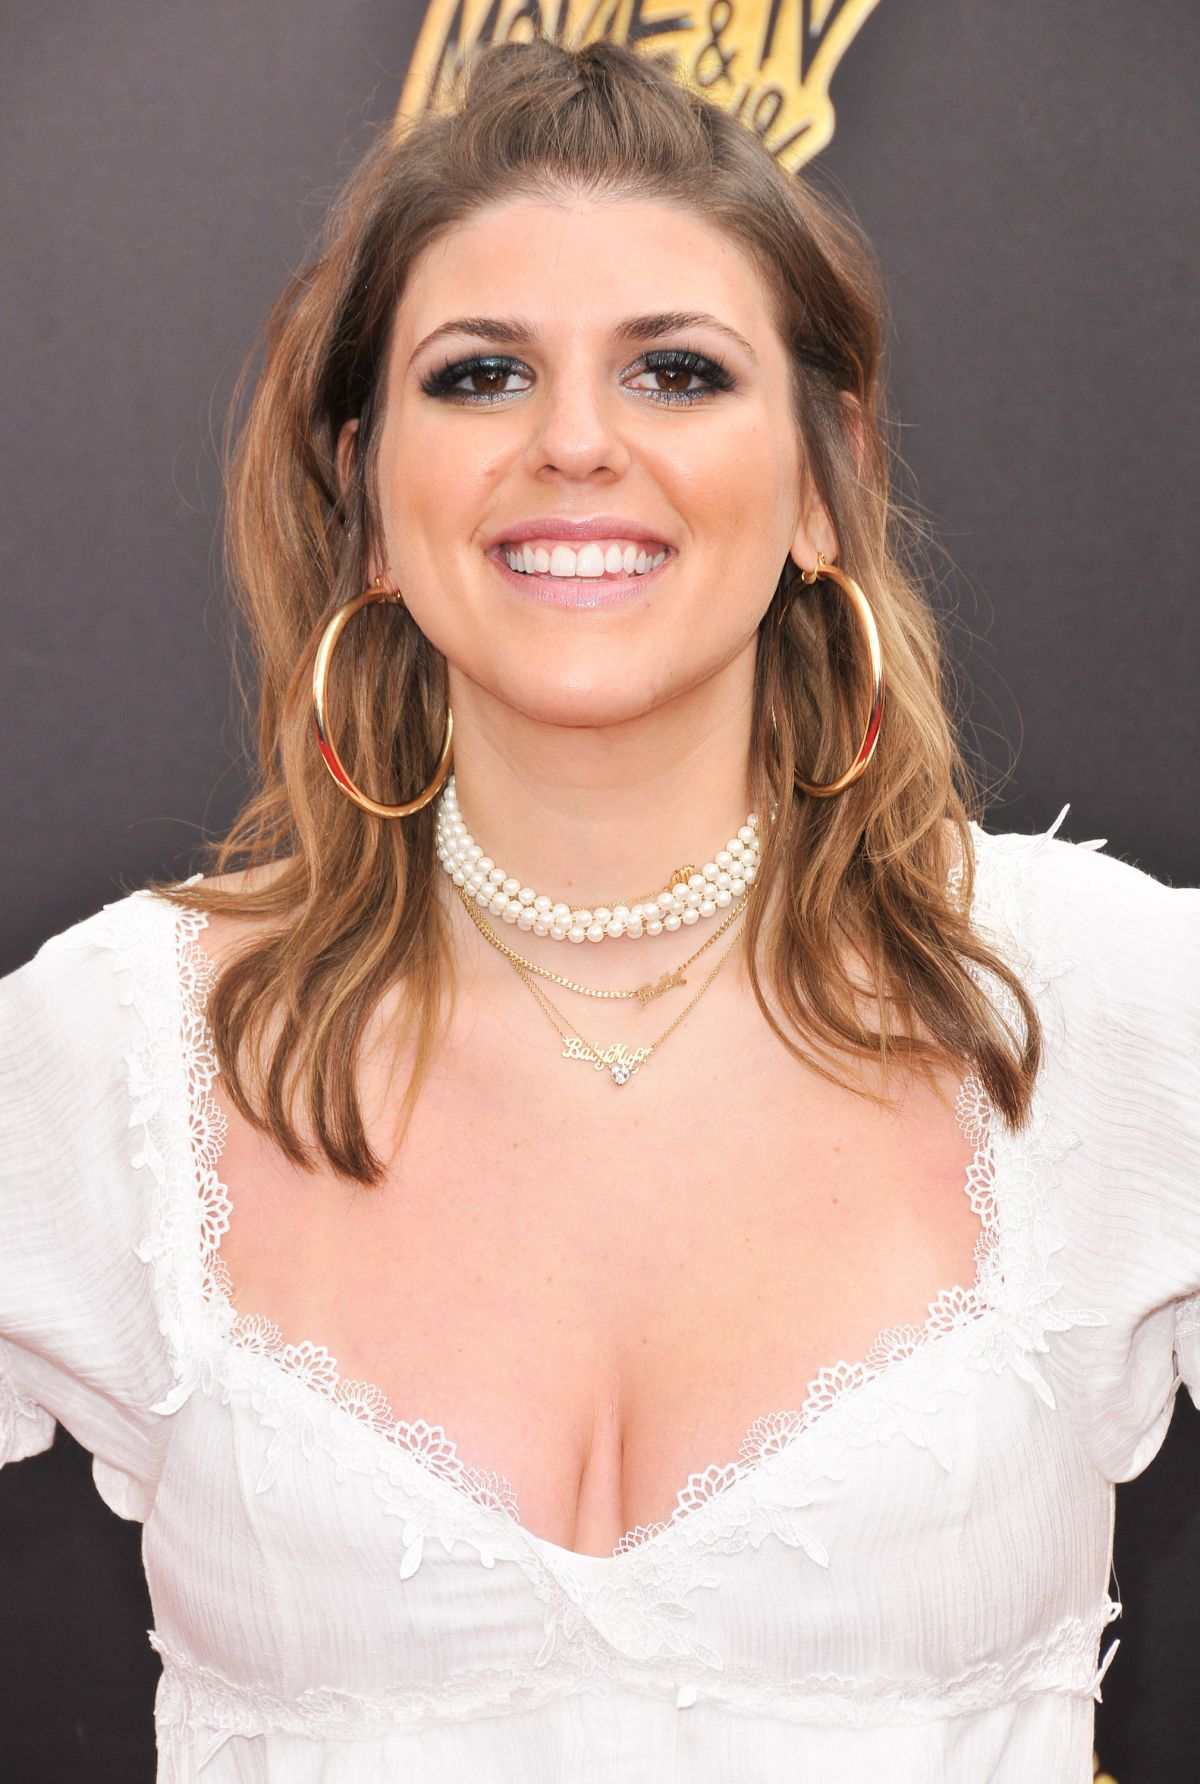 Hacked Molly Tarlov nude (25 photo), Sexy, Cleavage, Selfie, cameltoe 2006